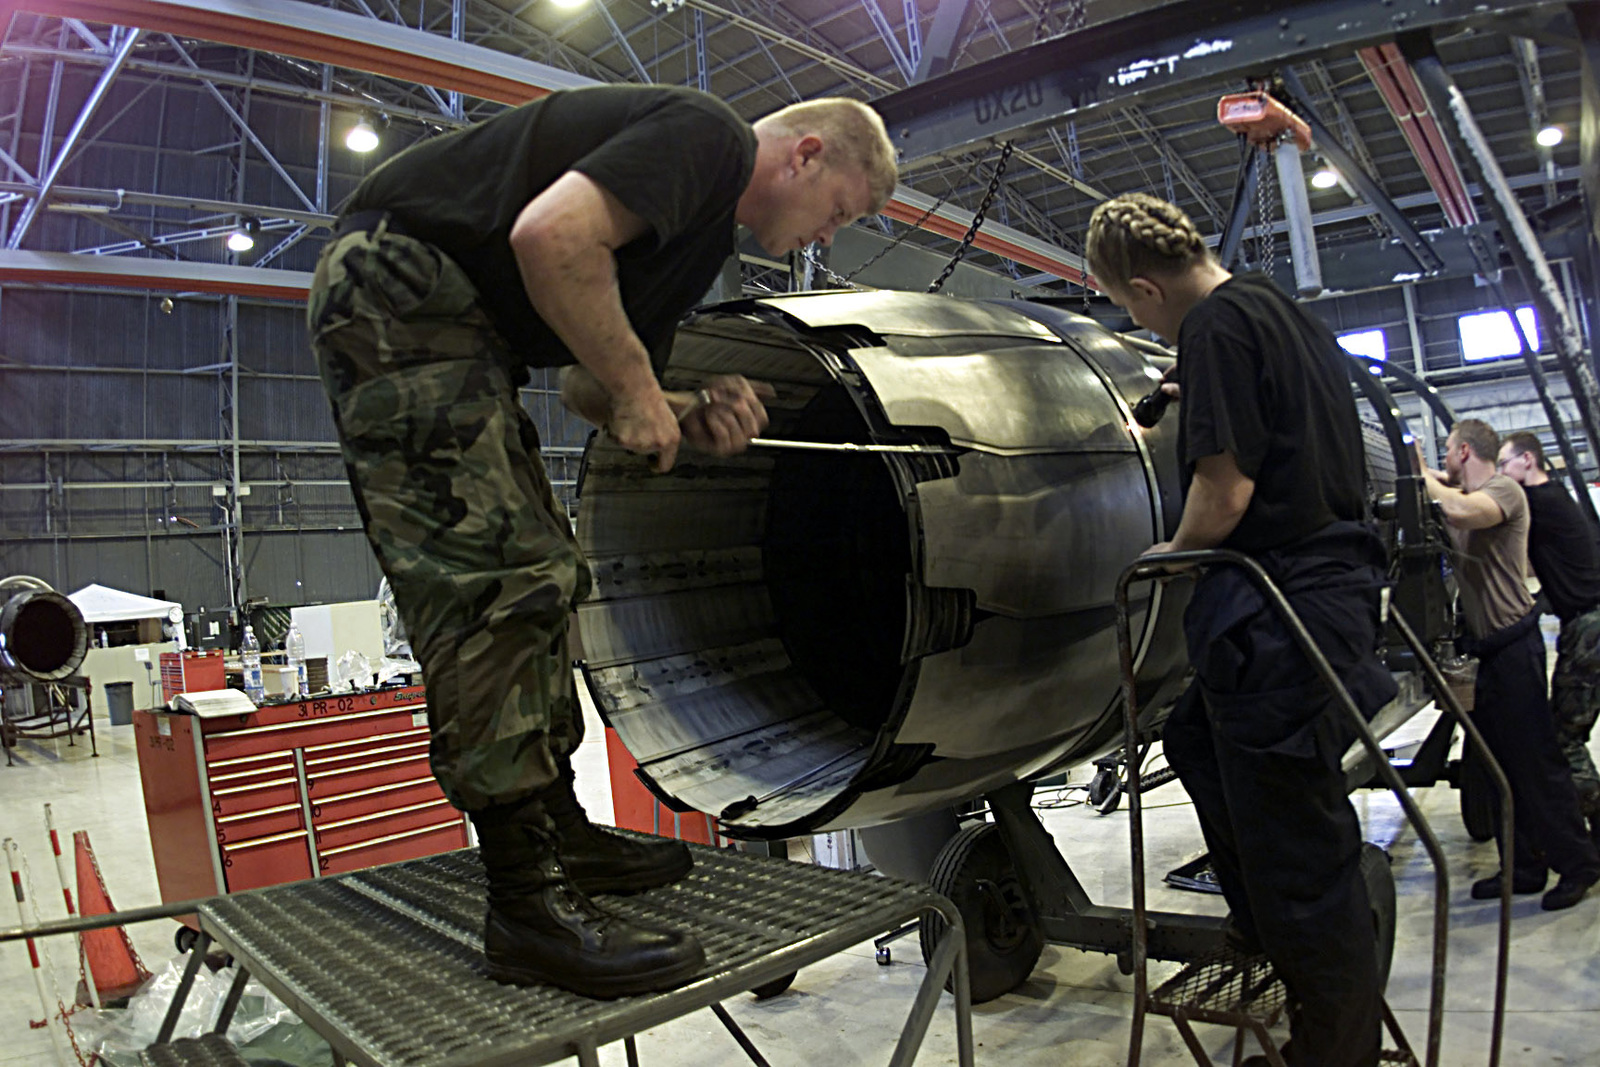 US Air Force AIRMAN First Class Curtiss Gladden (Left) and STAFF Sergeant Angel Bradshaw of the 31st Maintenance Squadron, 31 Fighter Wing, Aviano Air Base, Italy, replace the outer-flap on a F110-GE-100 engine at Aviano Air Base, ITA, on August 3rd, 2000